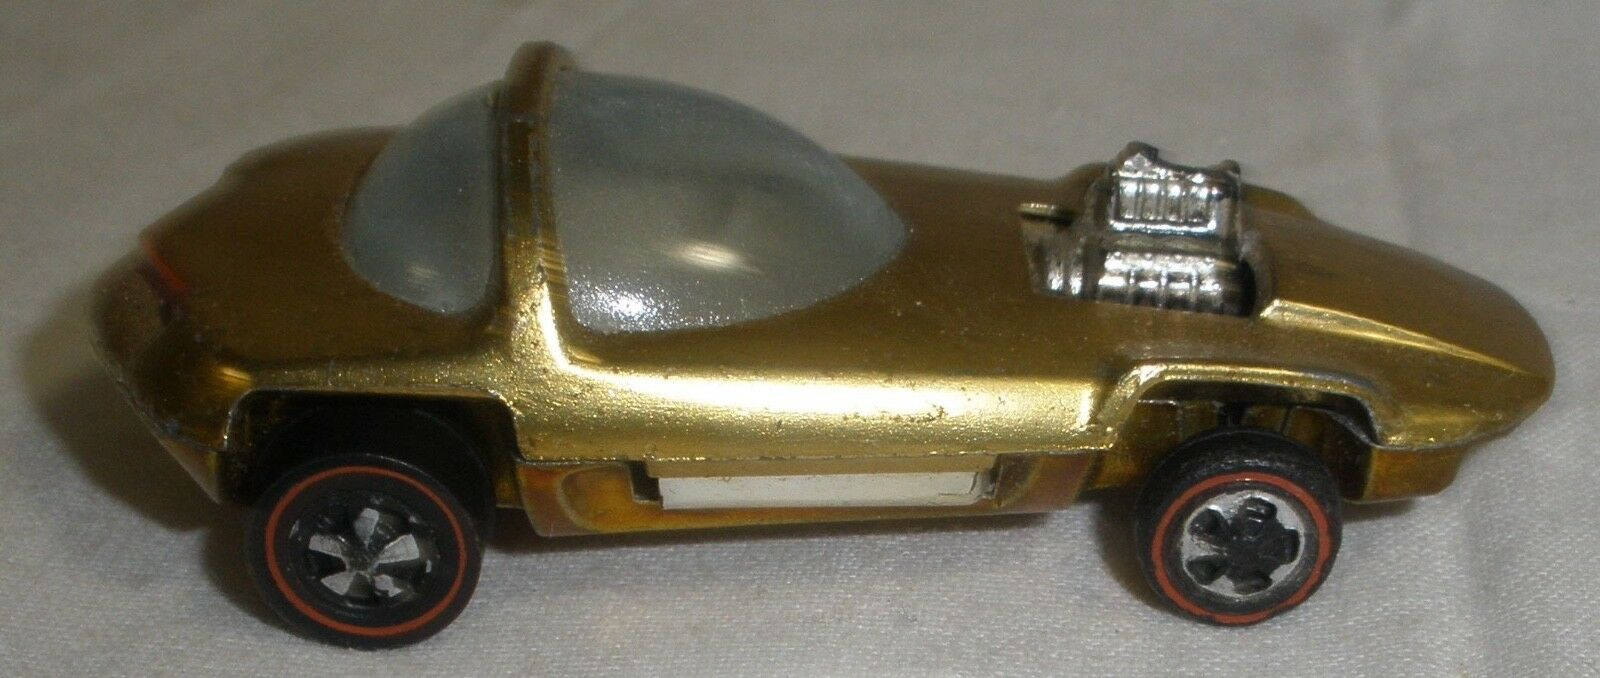 Hot Wheels redline Silhouette gold very nice condition